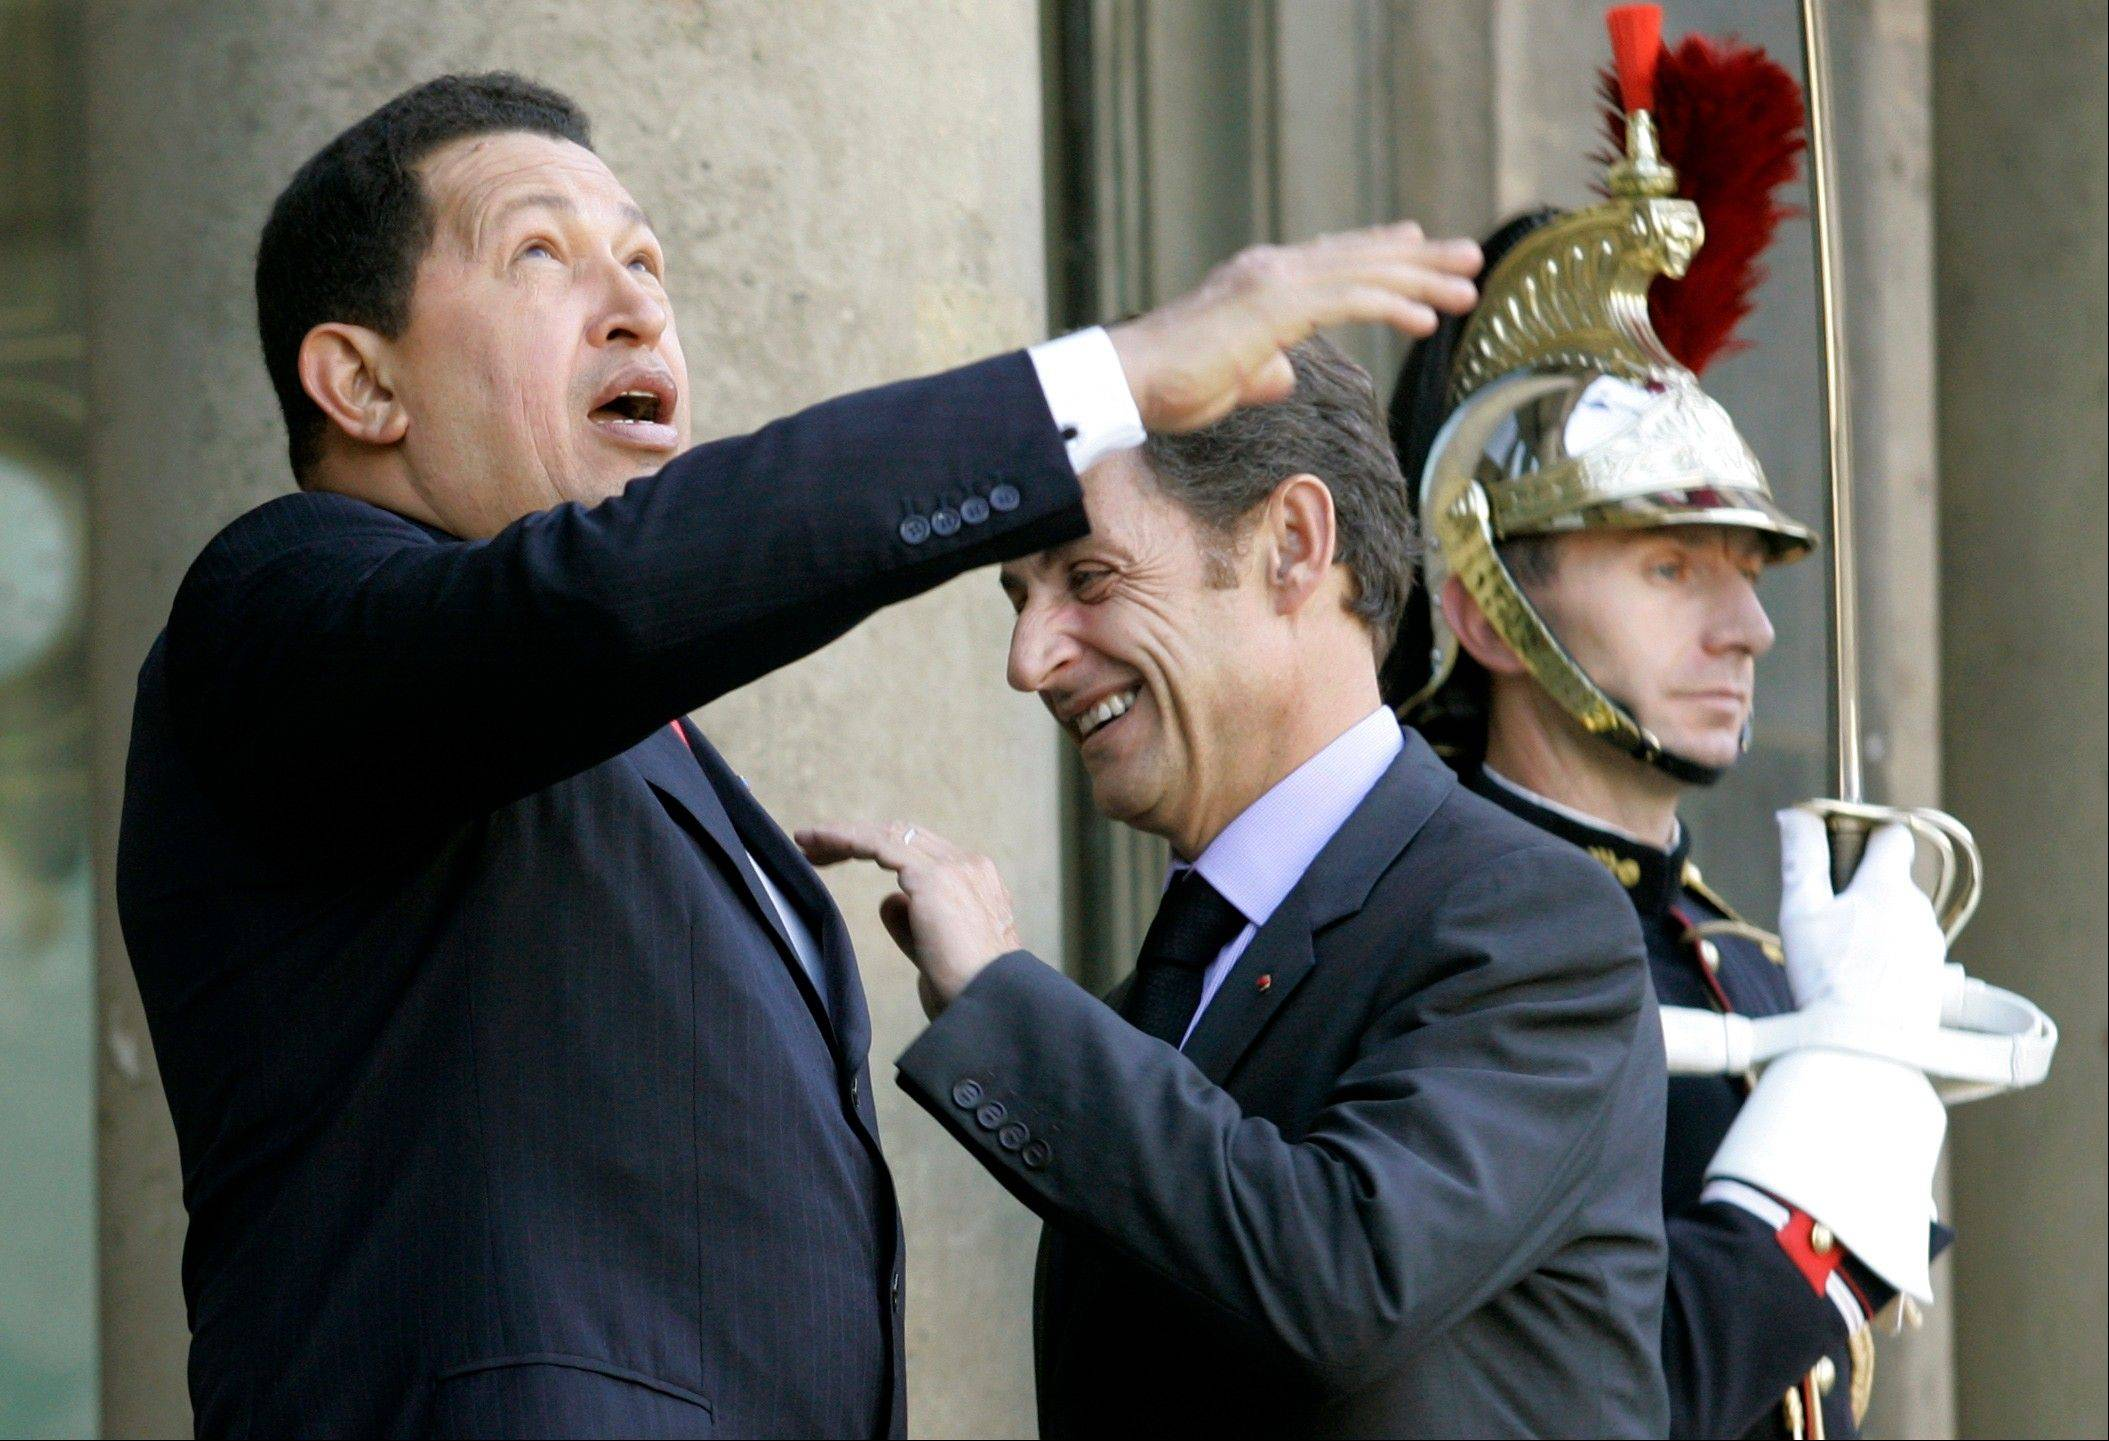 In this Oct. 26, 2008 file photo, France's President Nicolas Sarkozy, center, and Venezuela's President Hugo Chavez have a light moment prior to their meeting at the Elysee palace in Paris, France.